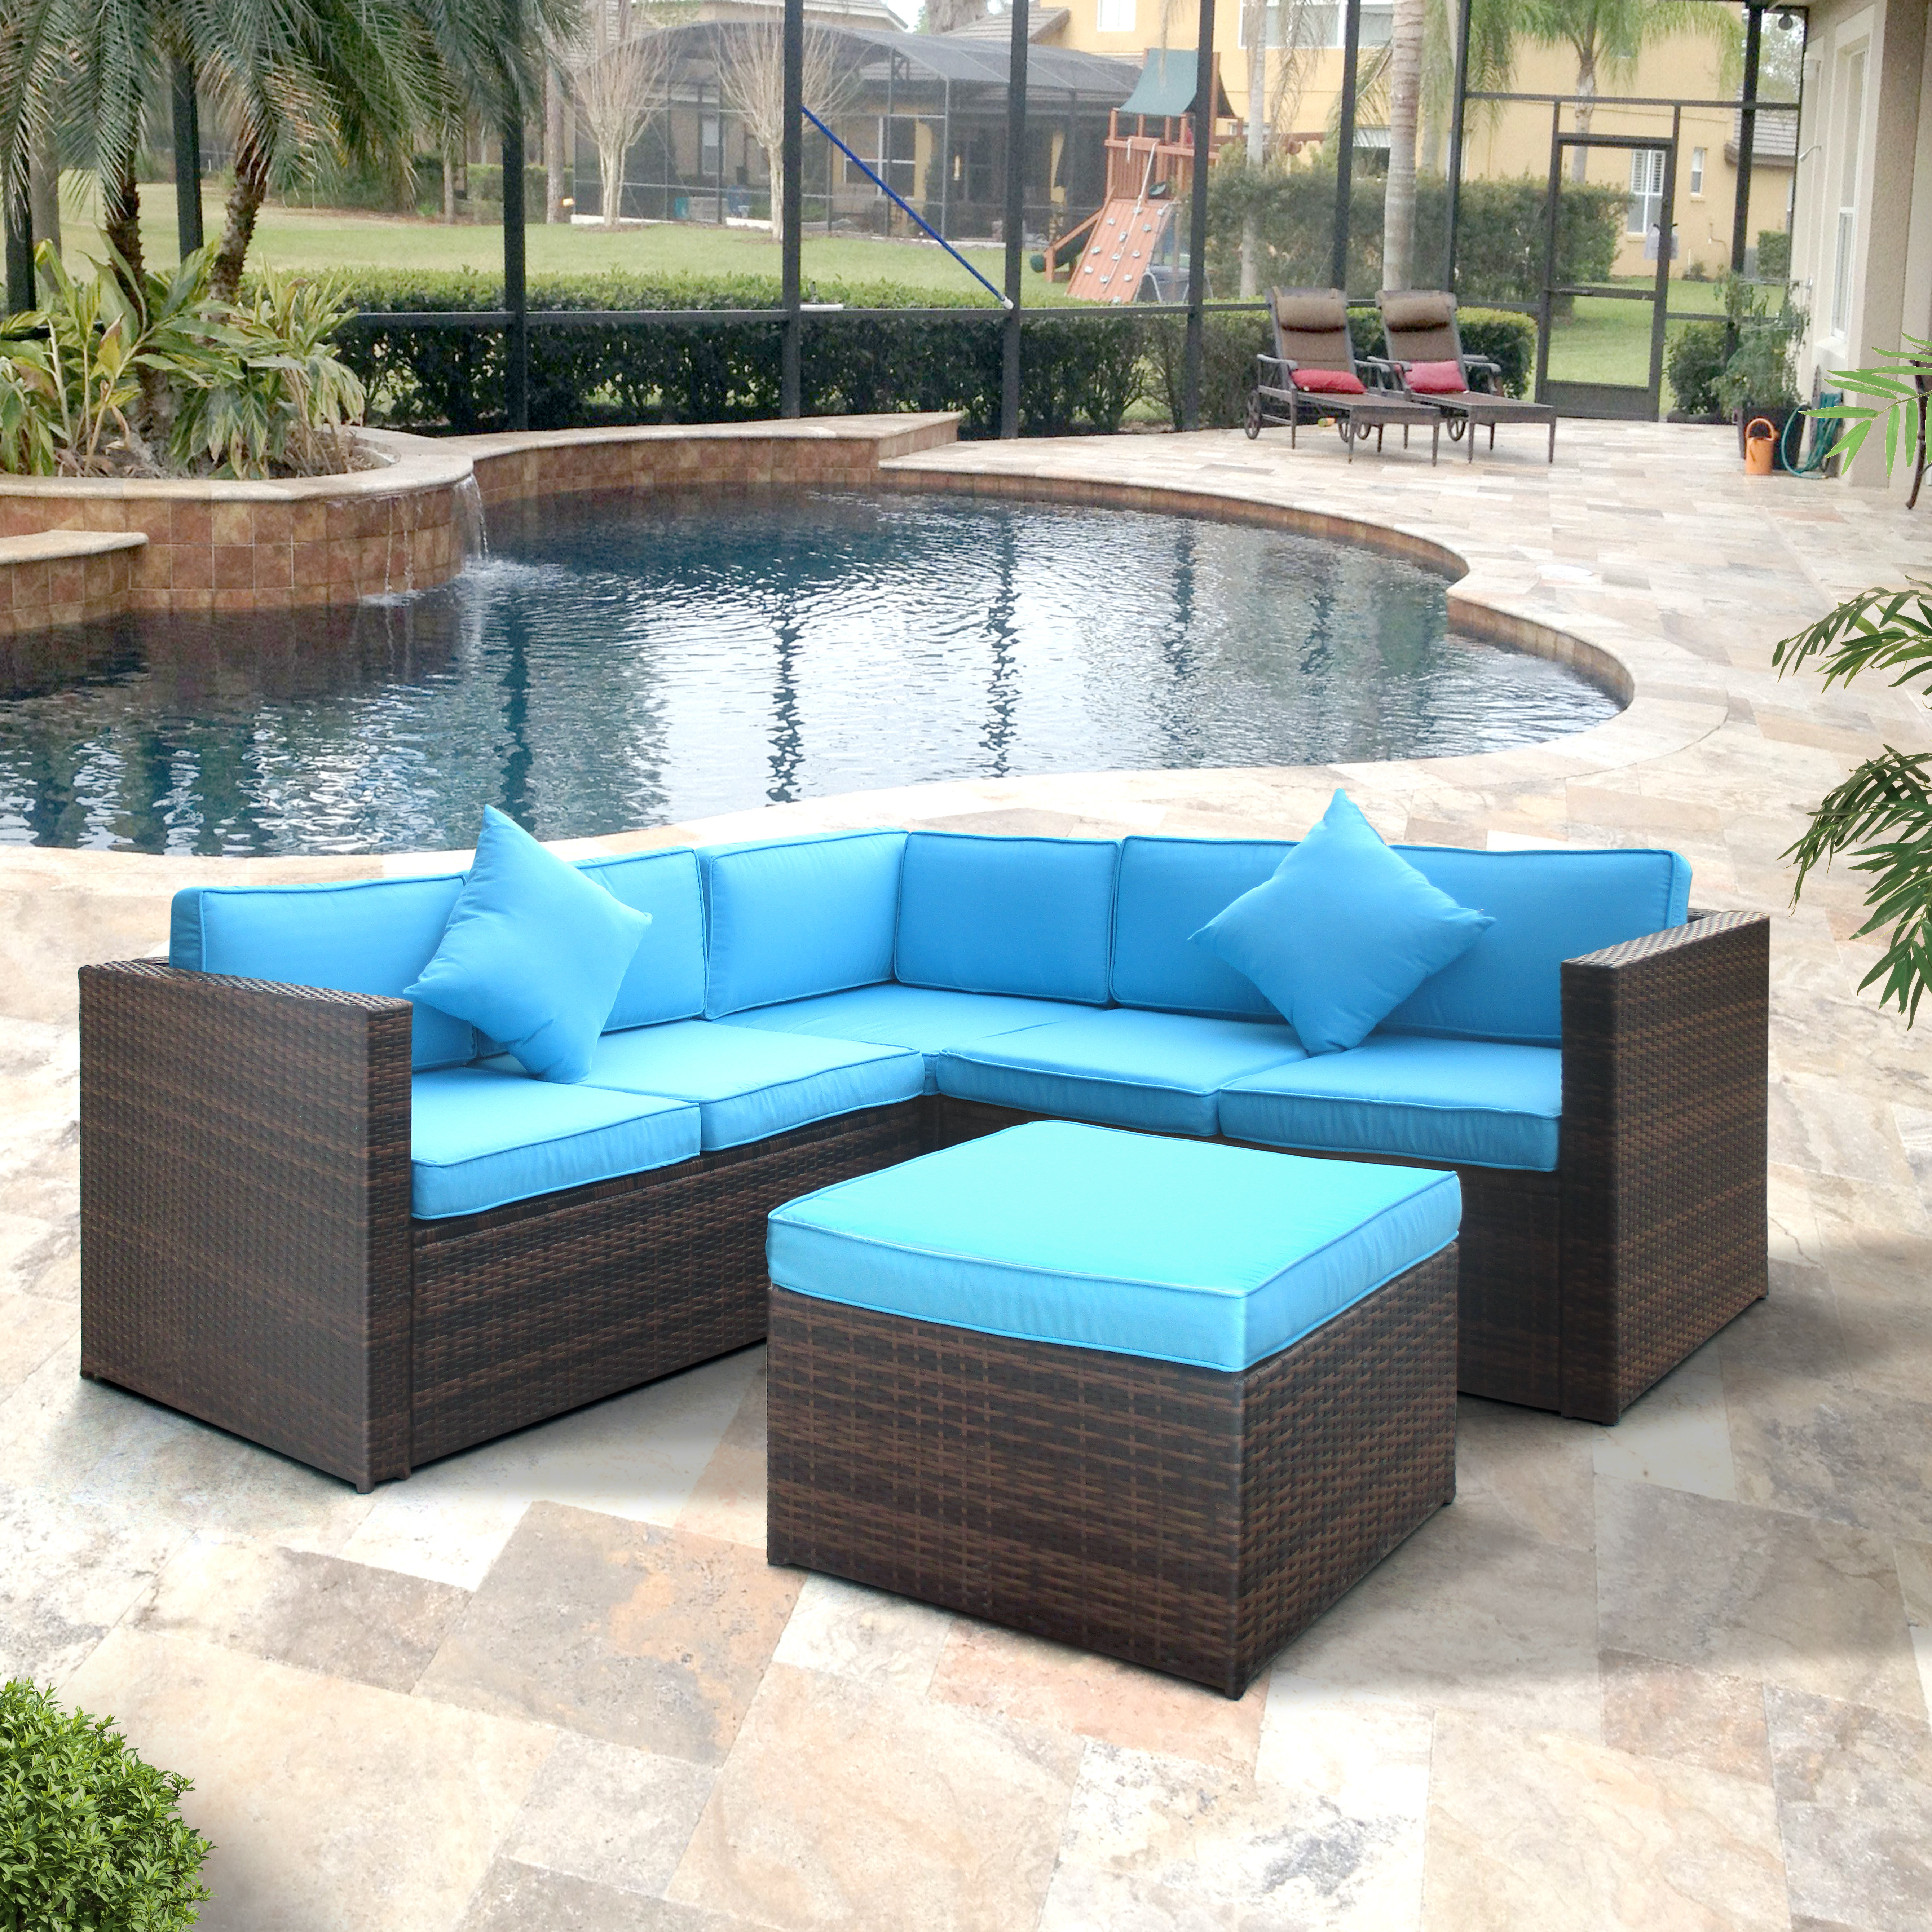 Rowley Patio Sofas Set With Cushions Regarding Most Recent Lilith Patio Sectional With Cushions (View 15 of 20)